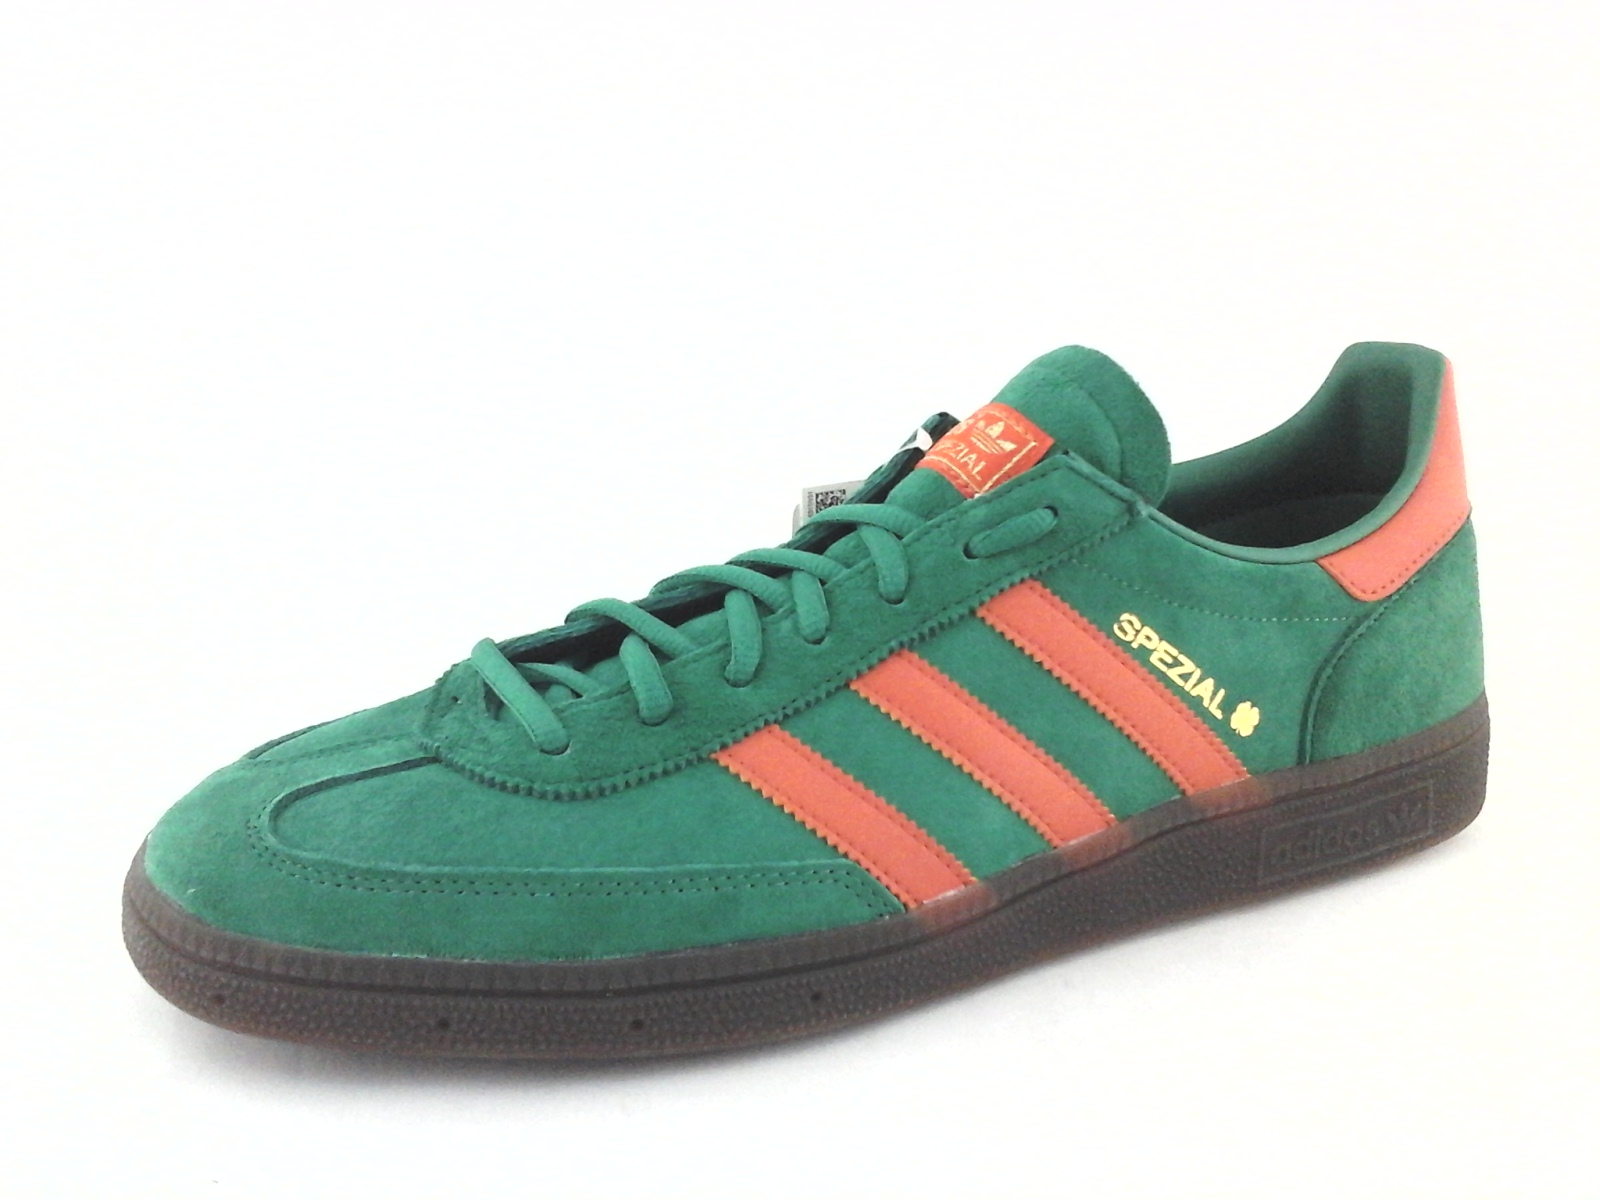 Adidas Handball SPEZIAL Green Red Suede Sneakers BD7620 Mens